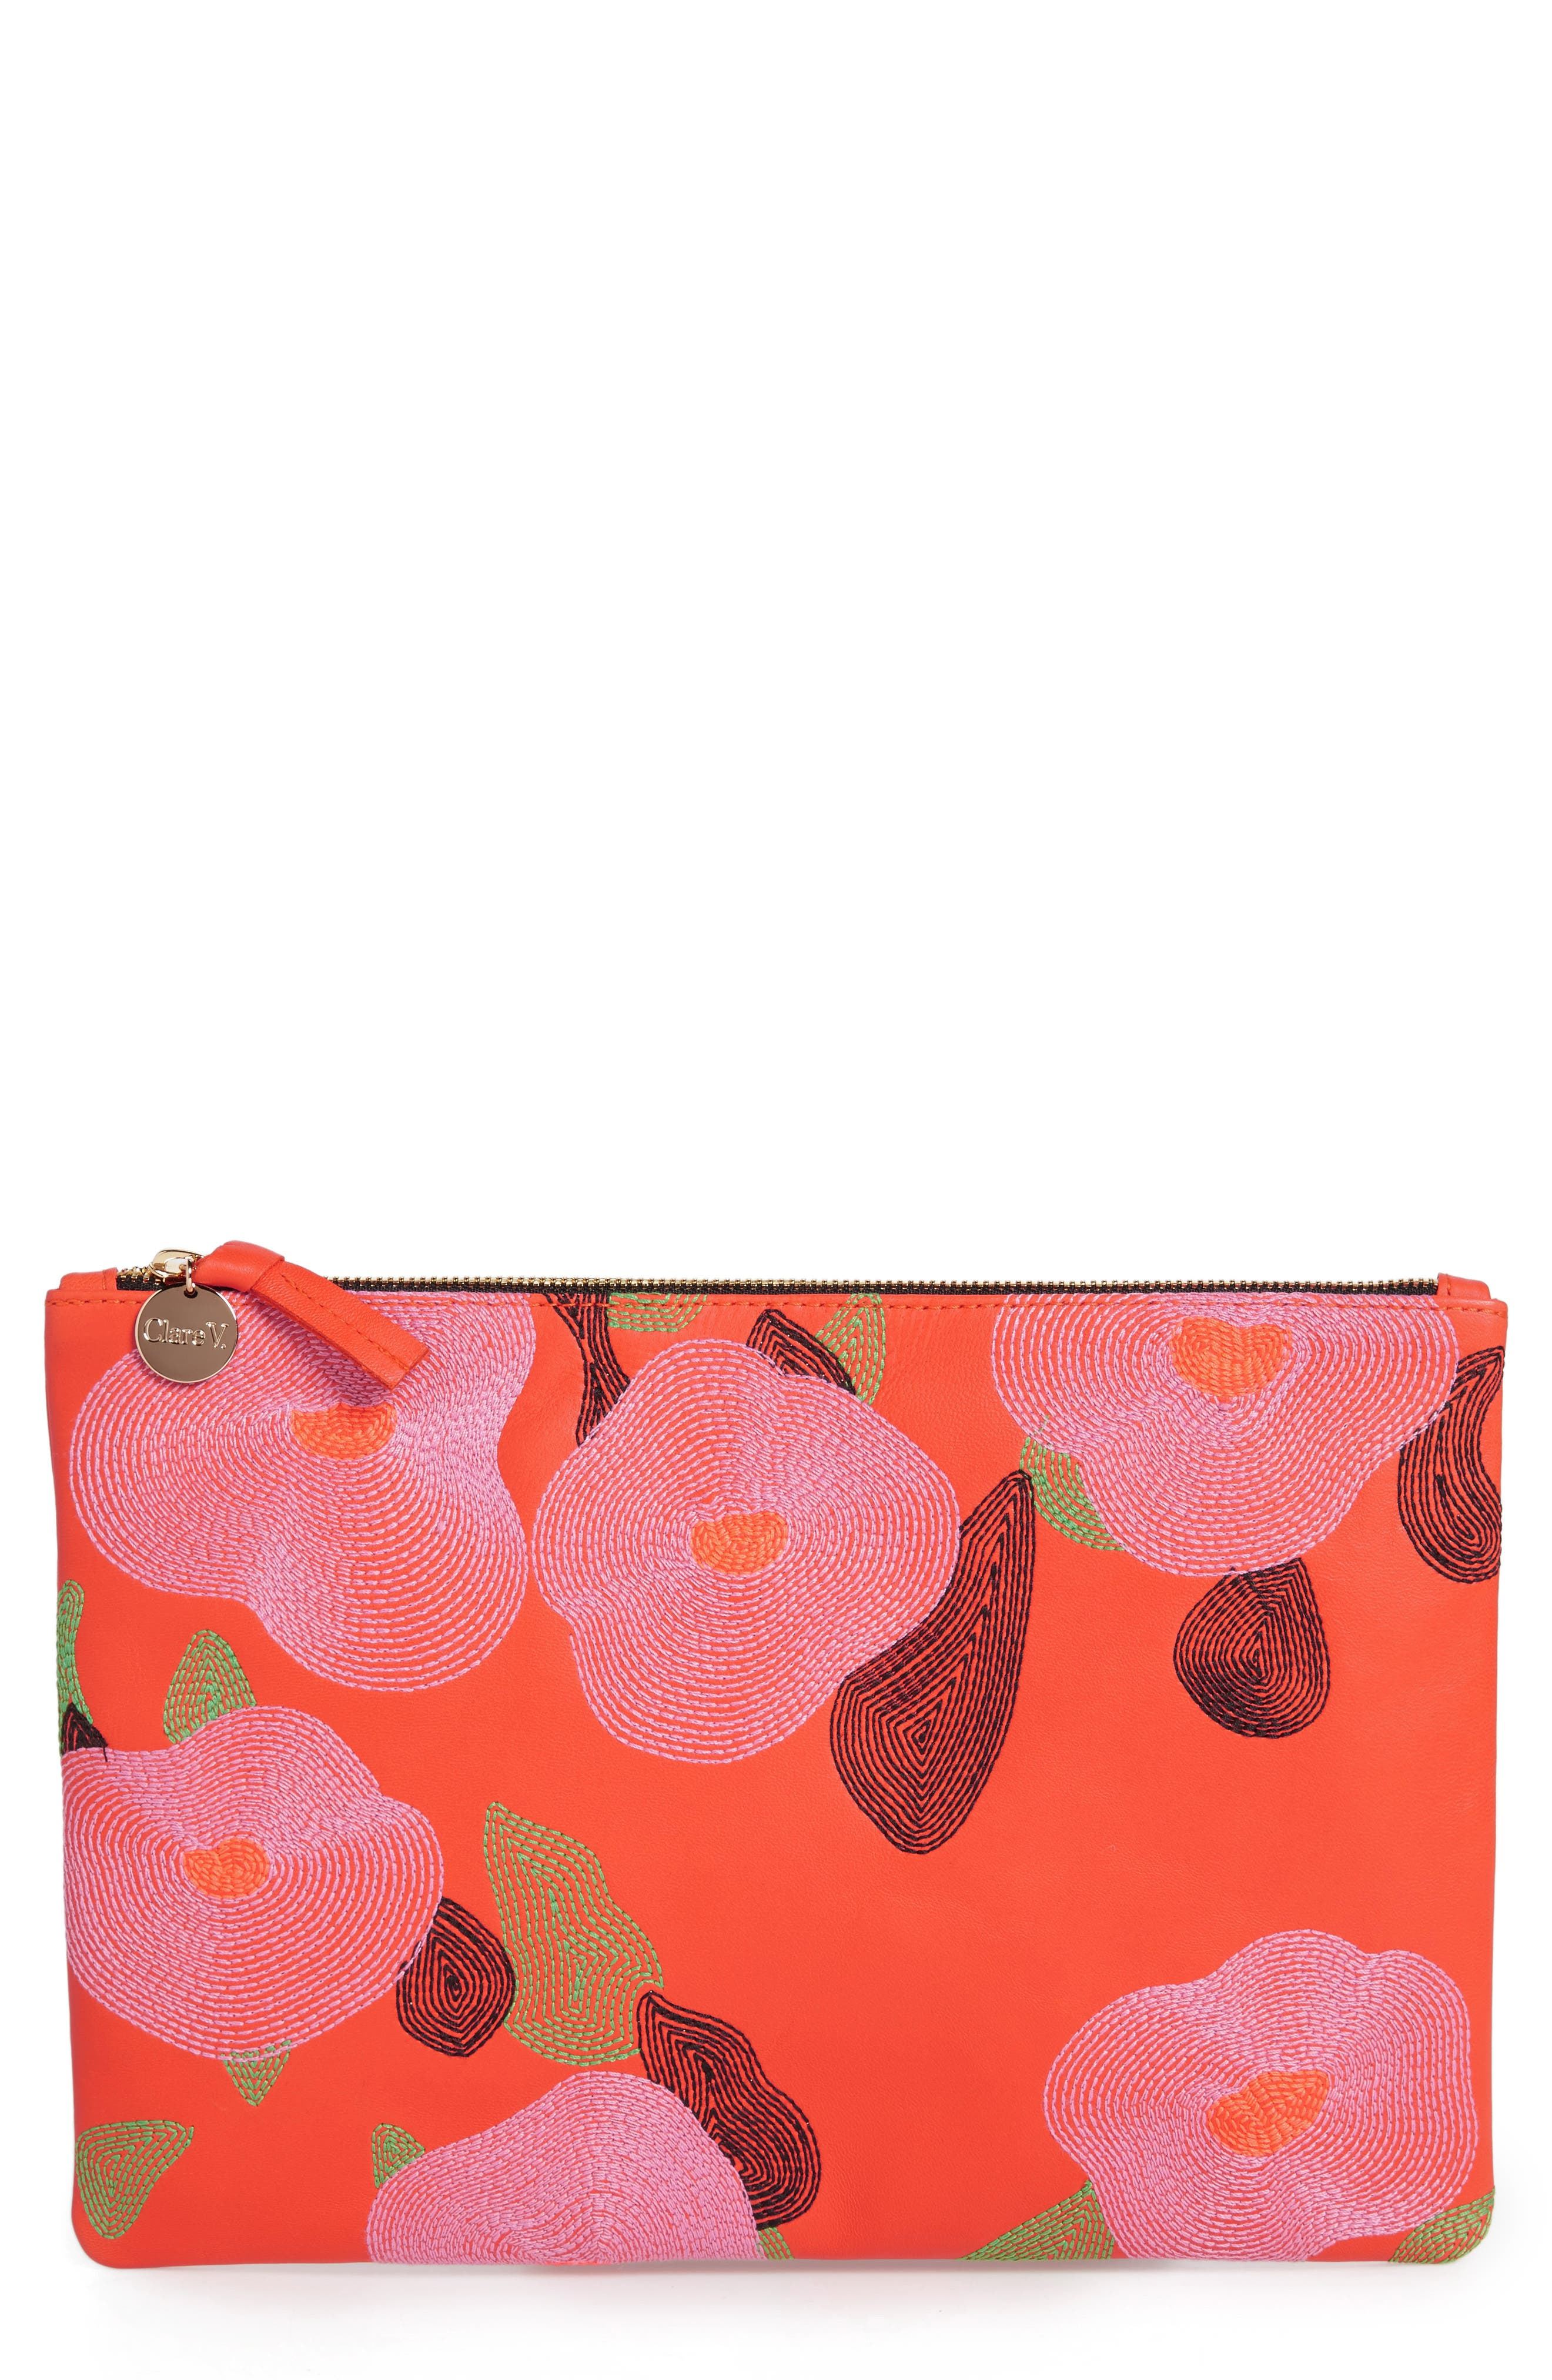 Alternate Image 1 Selected - Clare V. Embroidered Poppy Leather Flat Clutch